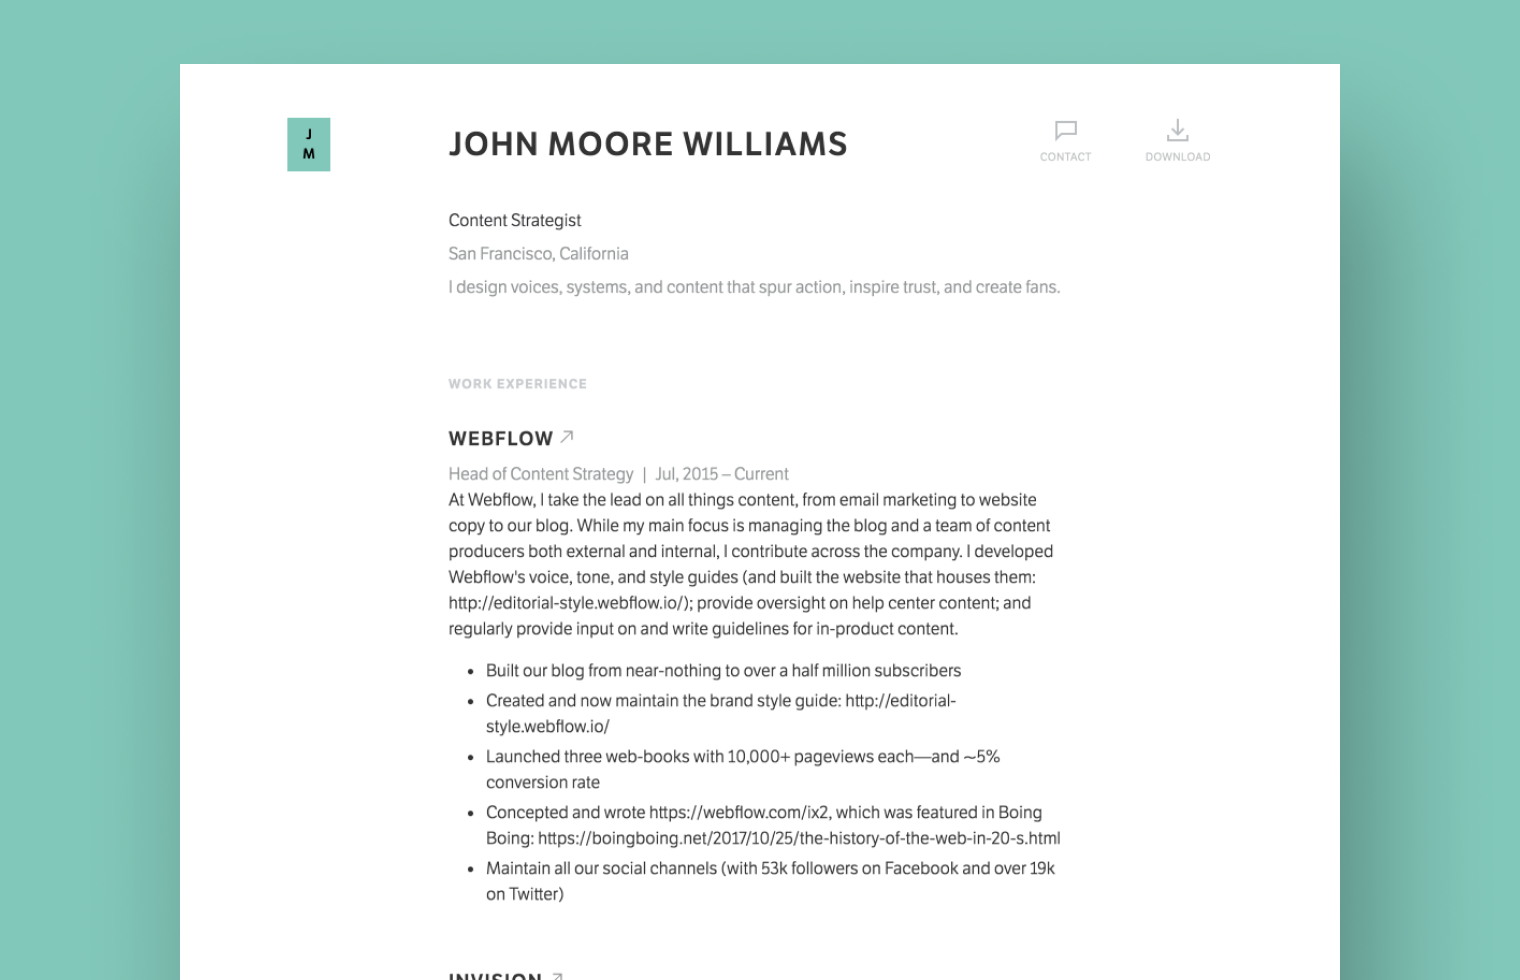 Content Strategist Resume example built with Standard Resume